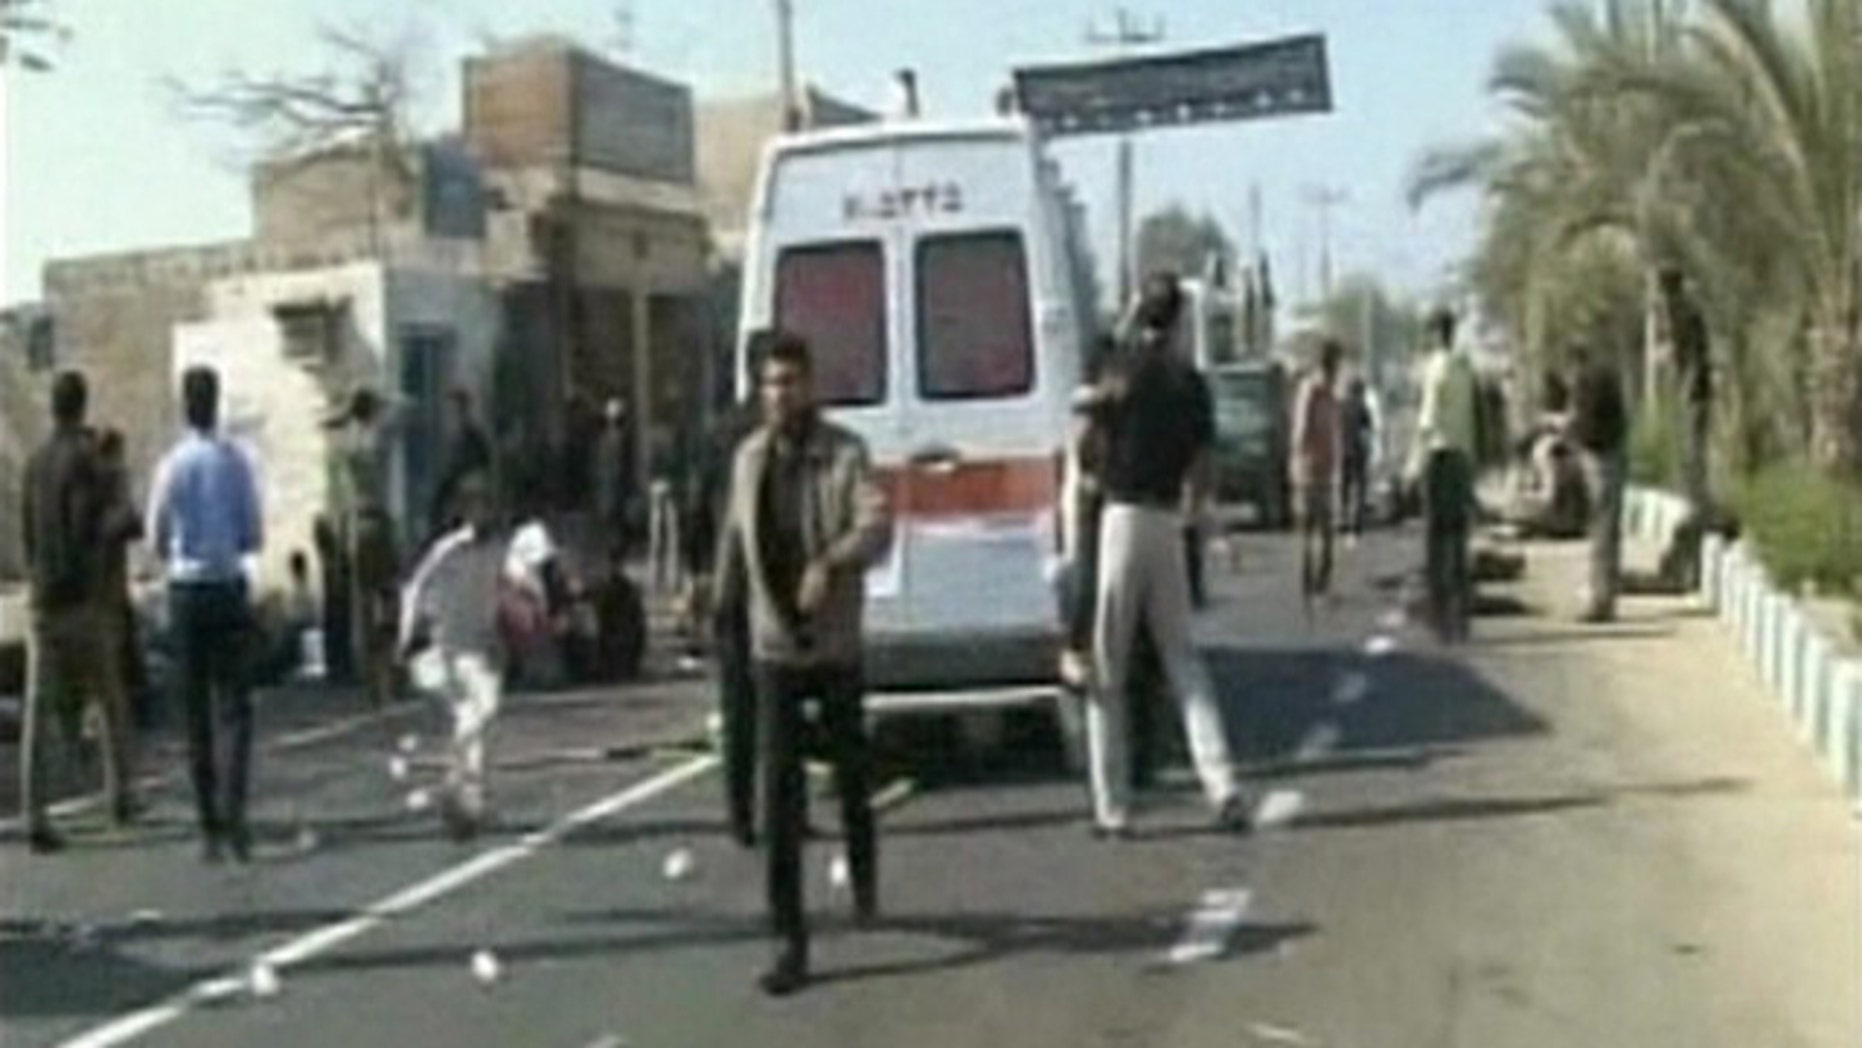 Dec. 15: The aftermath of an explosion outside a mosque in Iran's southeastern city of Chabahr is seen in this still image taken from video.